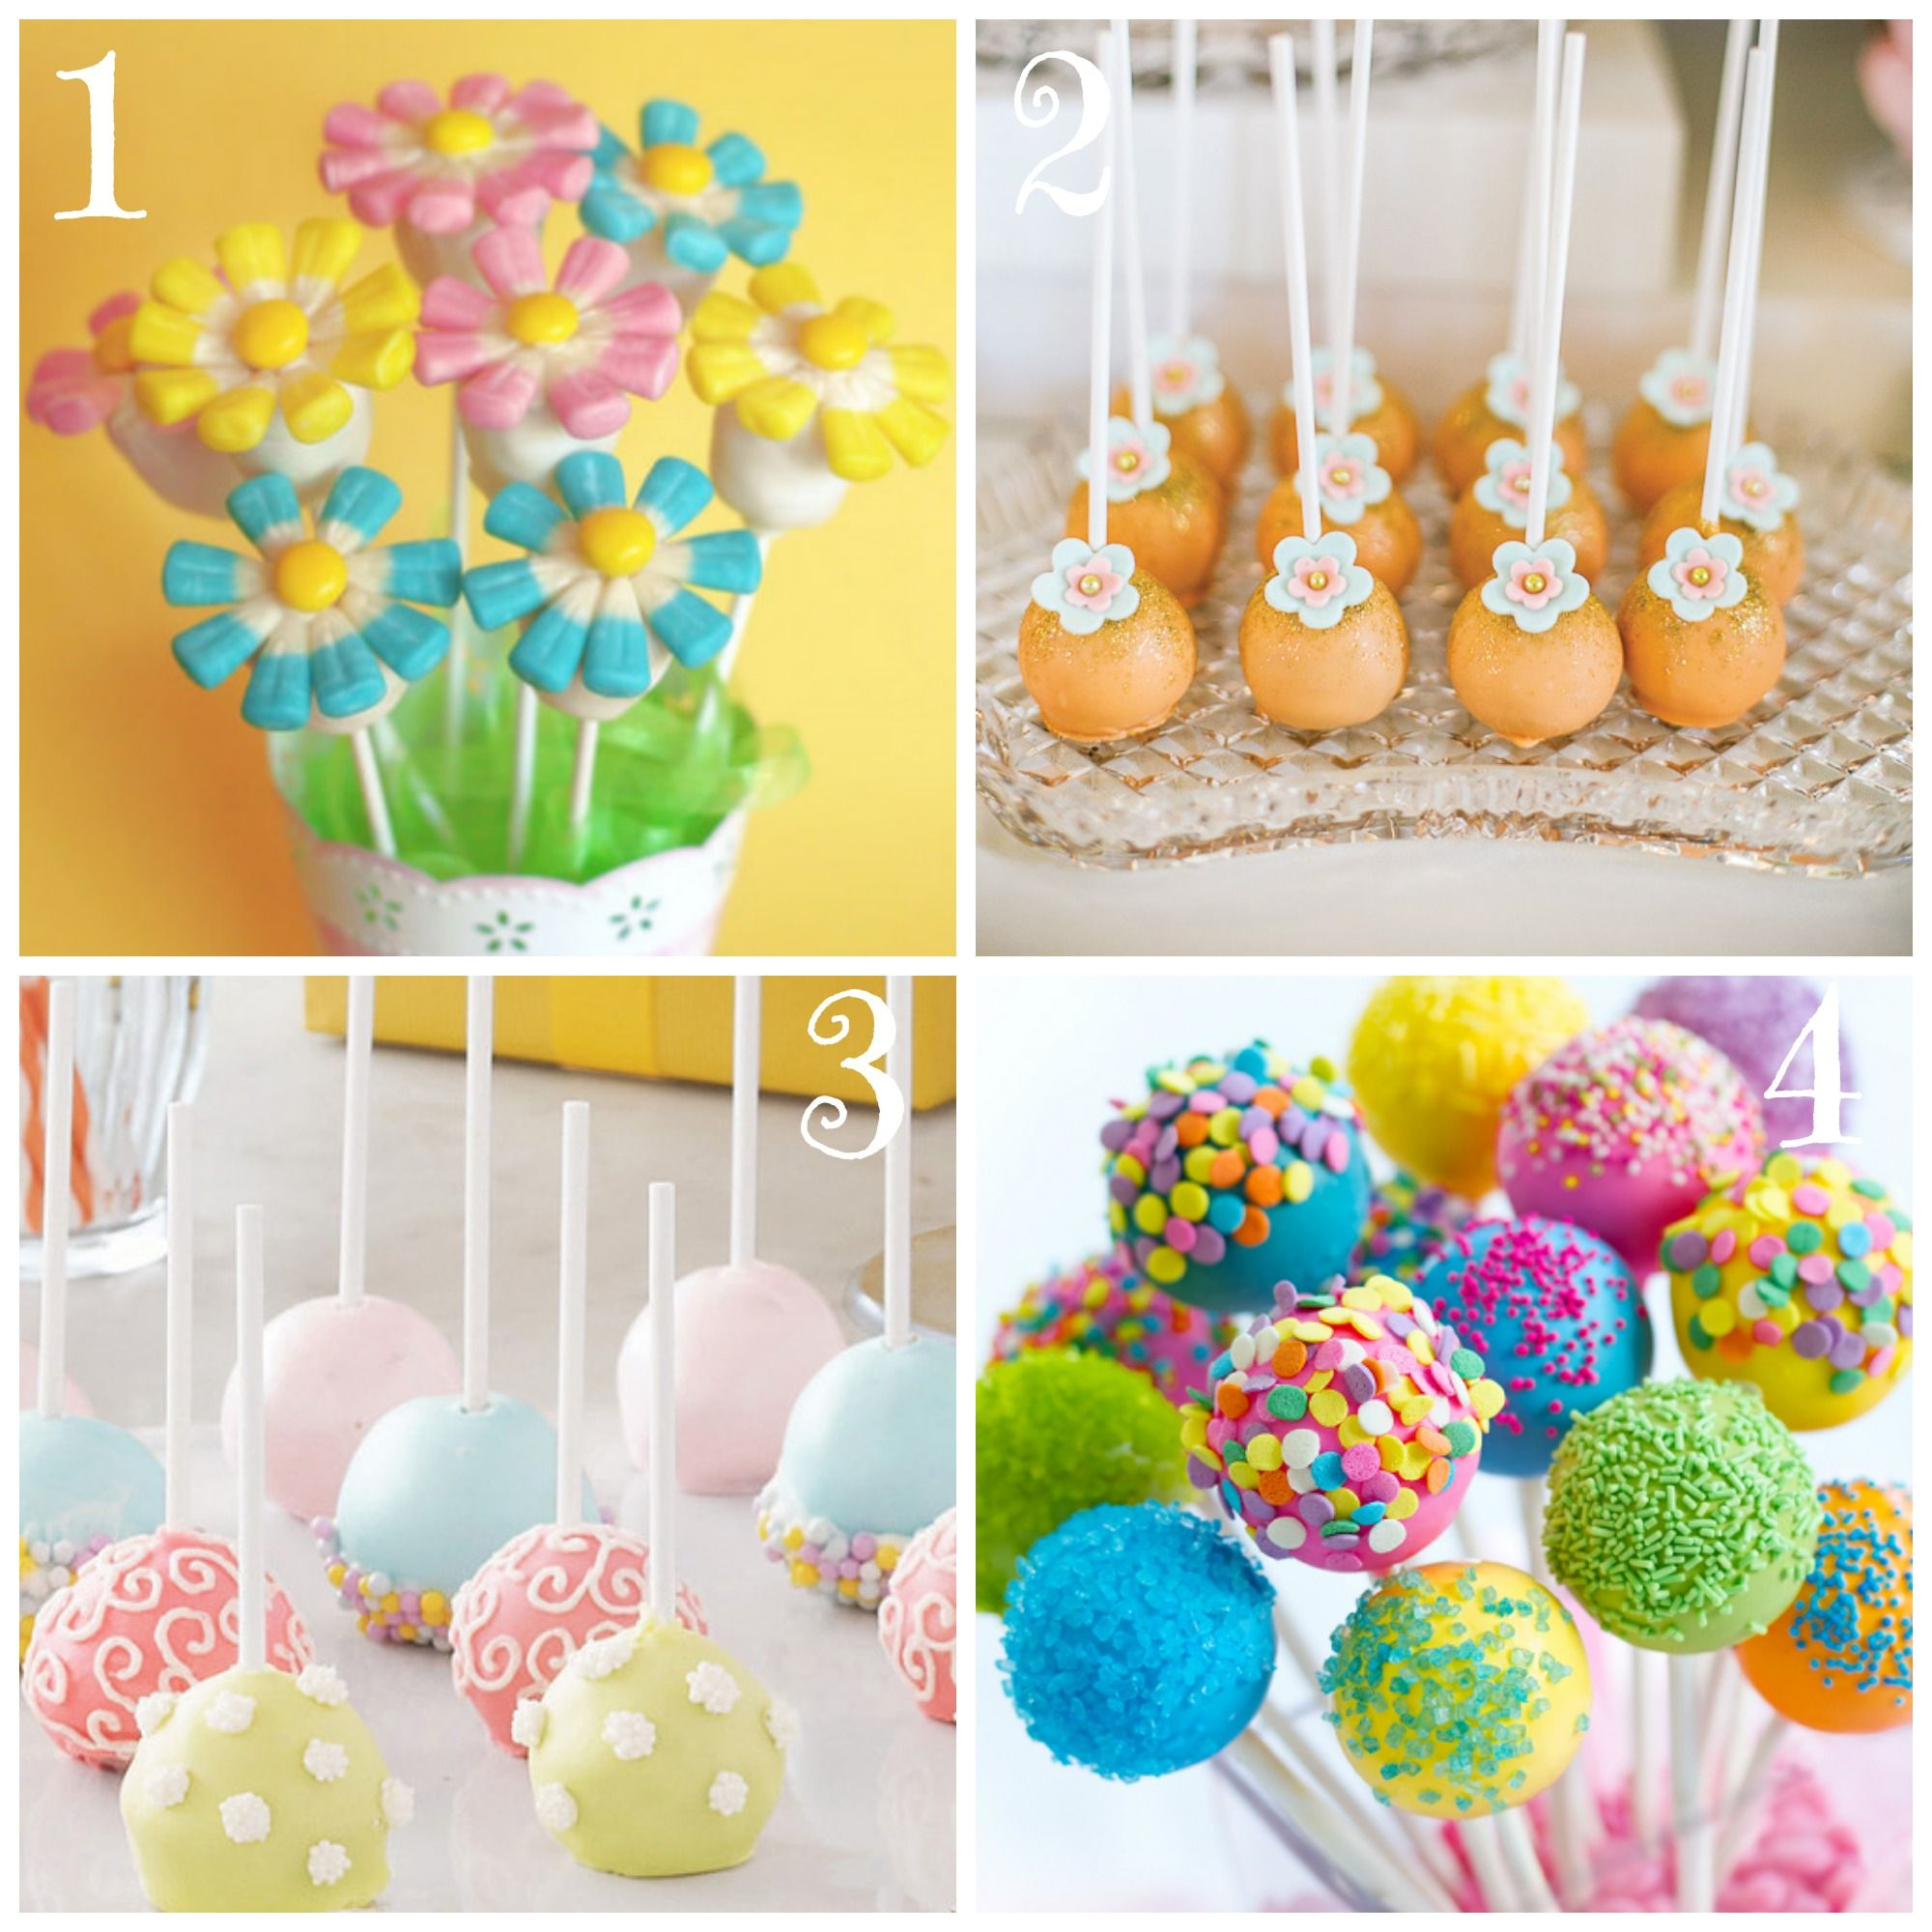 Cake Pops Easy Decorating Ideas : Top 8 Festive Spring Cake Pops Spring cake, Cake pop and ...